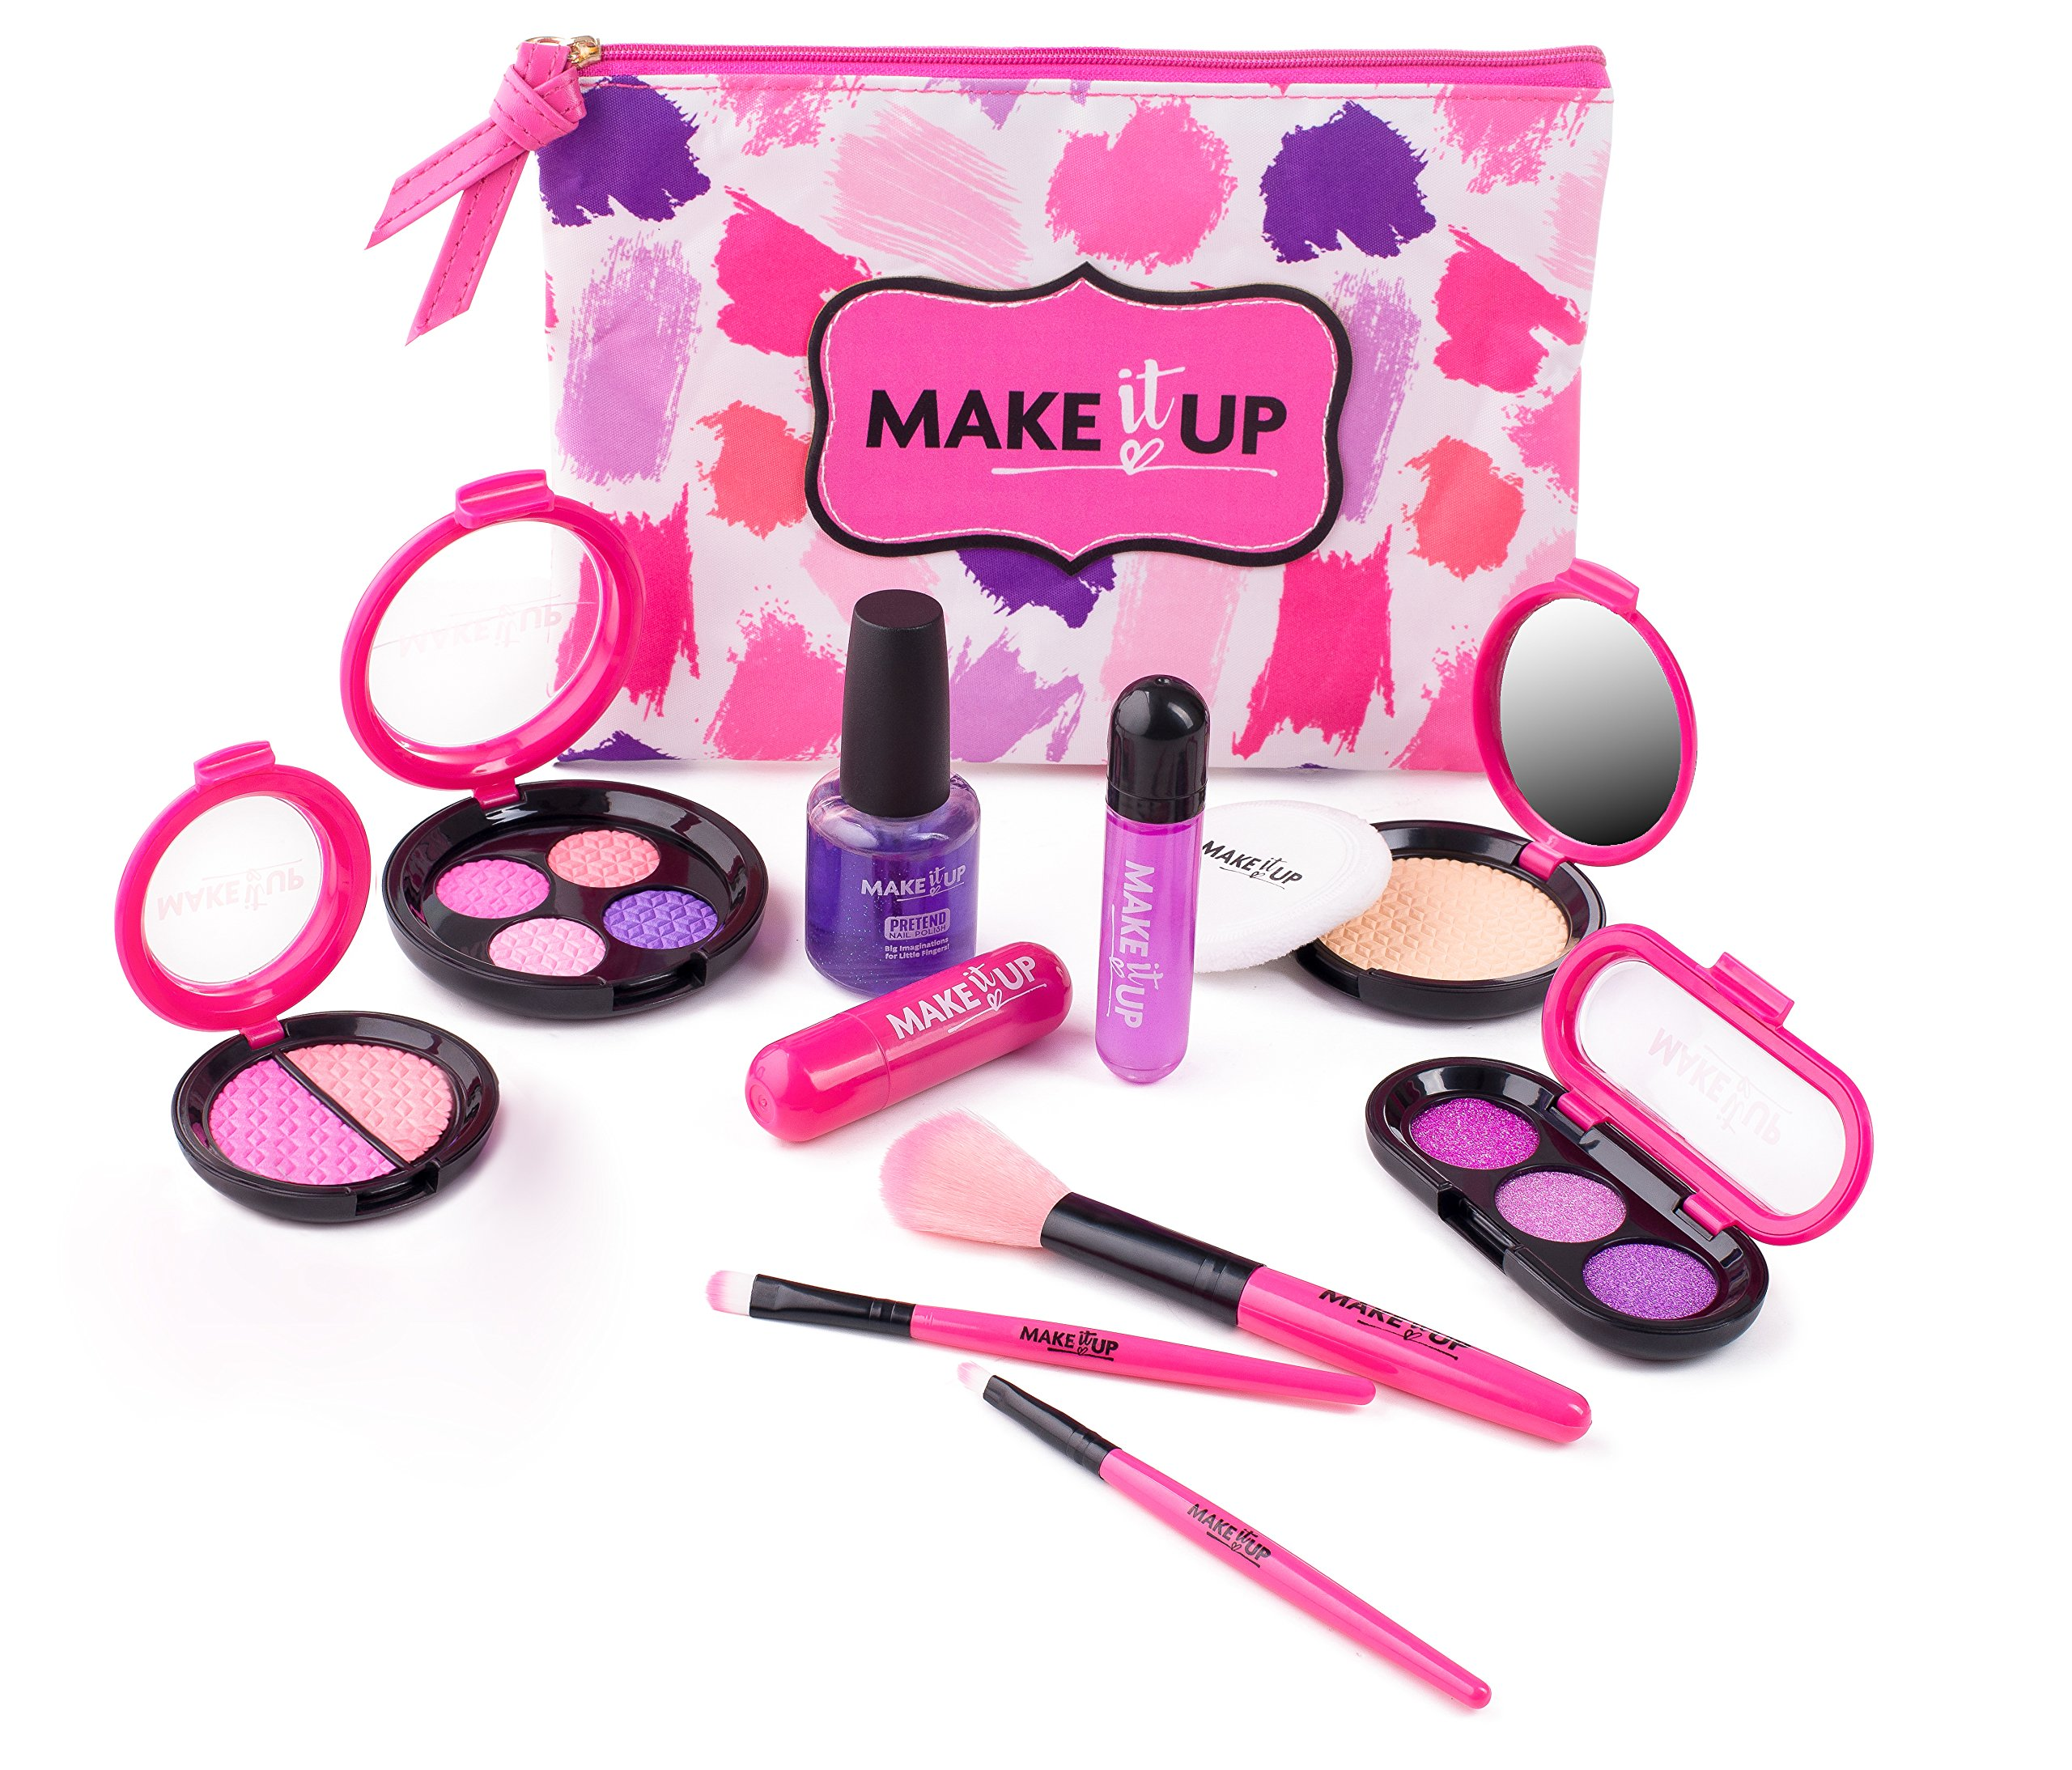 Premium Pretend Play Cosmetics and Makeup Kit for Girls